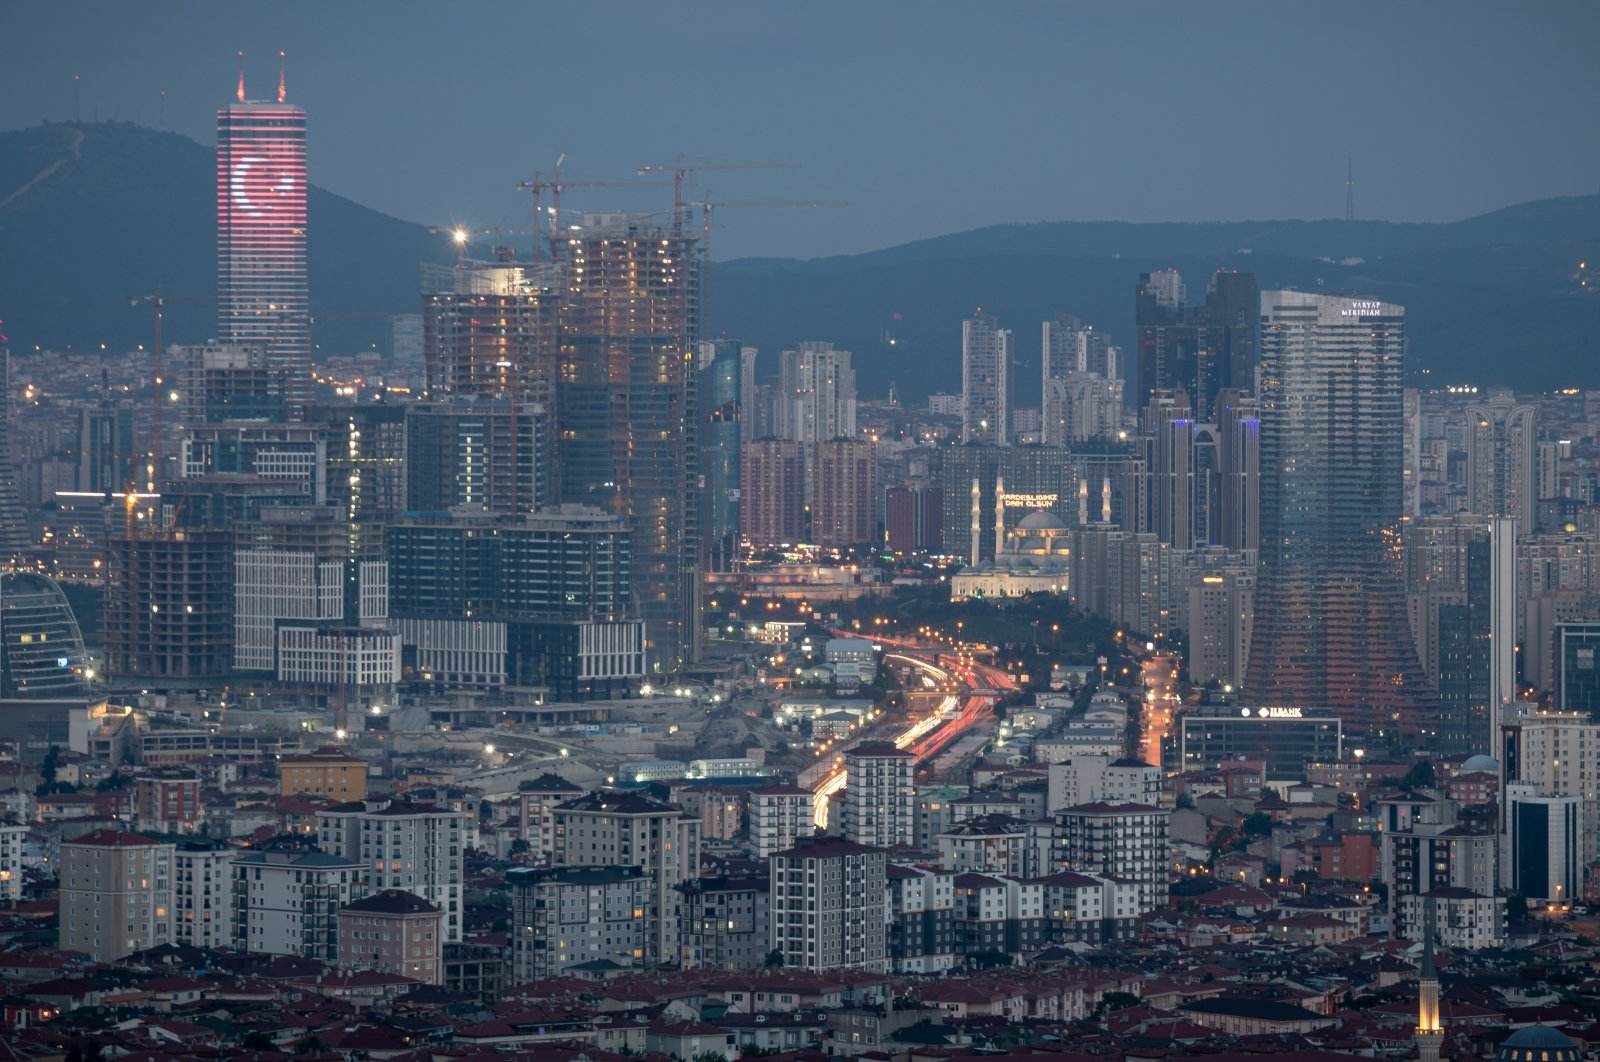 A skyscraper bares the Turkish flag in neon lights over a highly developed urban landscape with new construction projects and towers rising quickly, Istanbul, Turkey, July 11, 2021. (Photo by Getty Images)